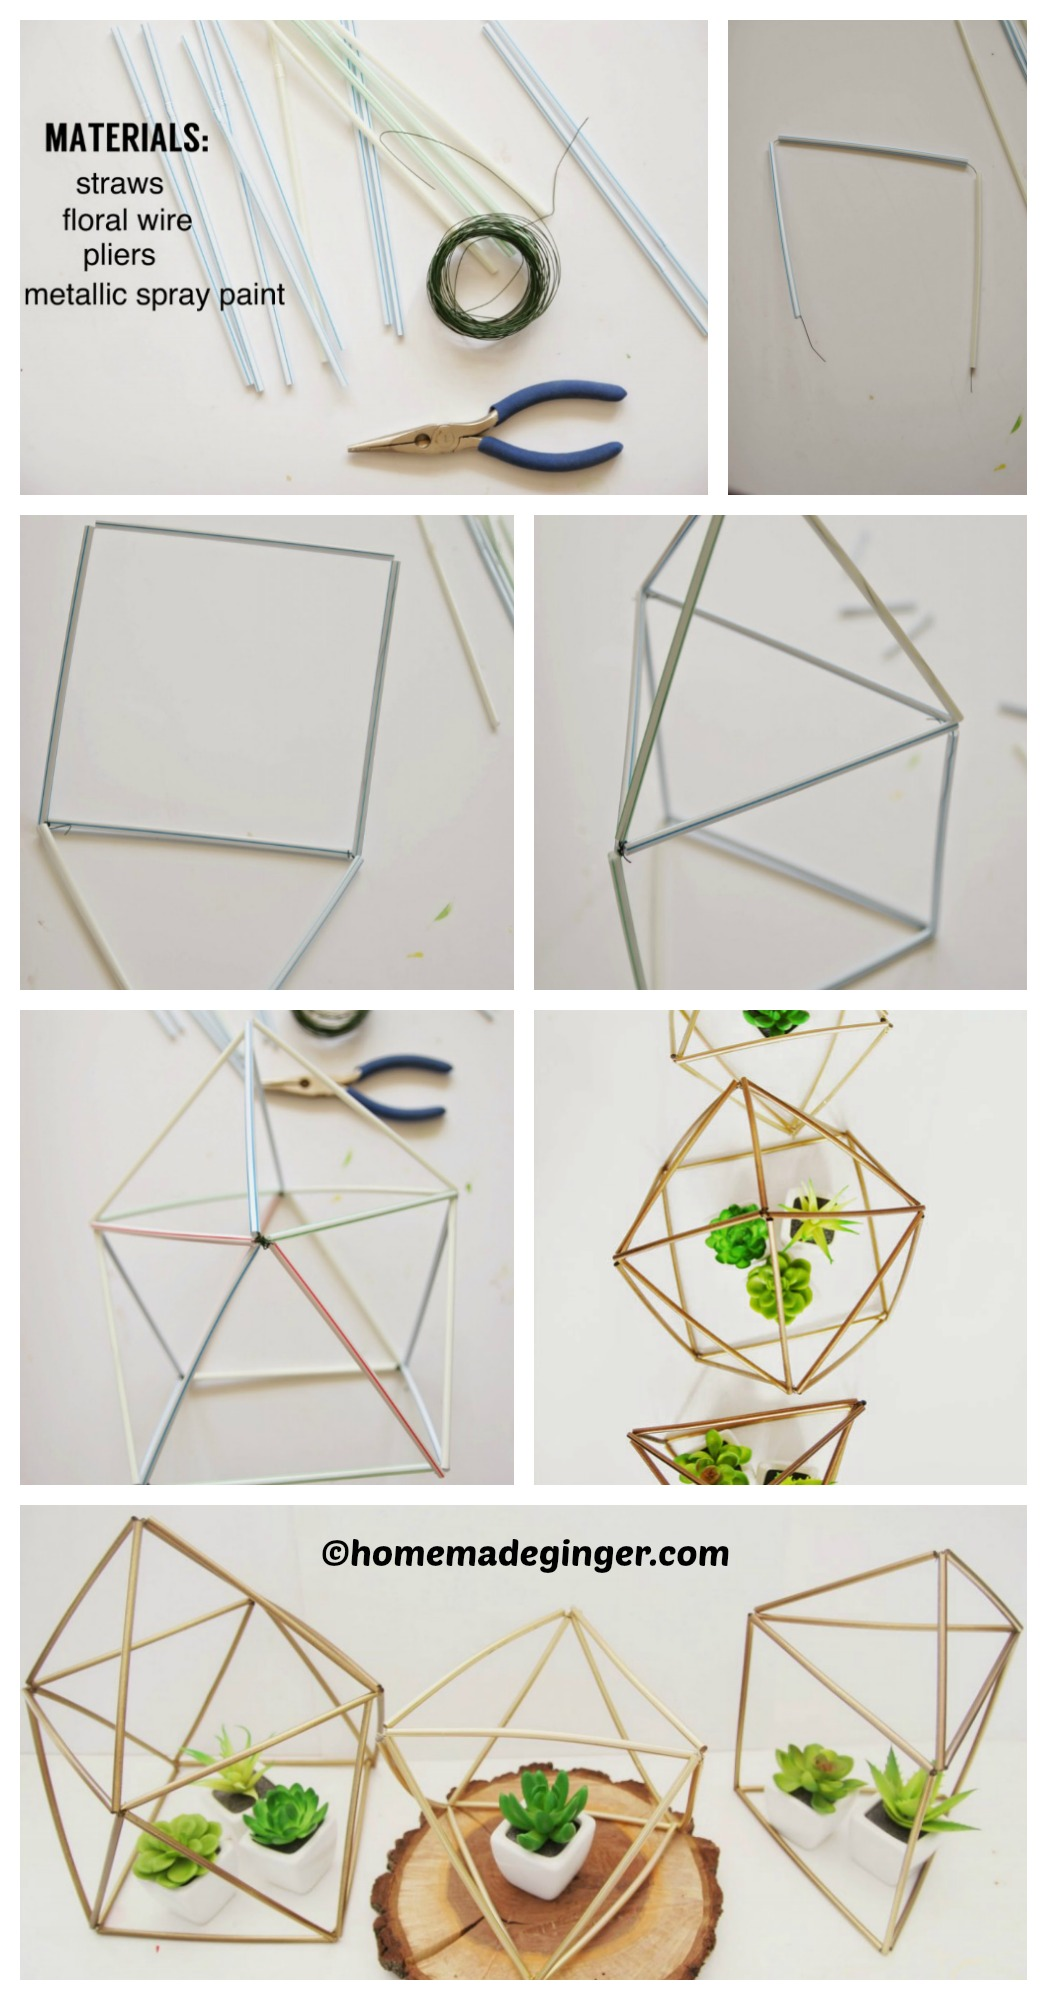 How to make Geometric Planters